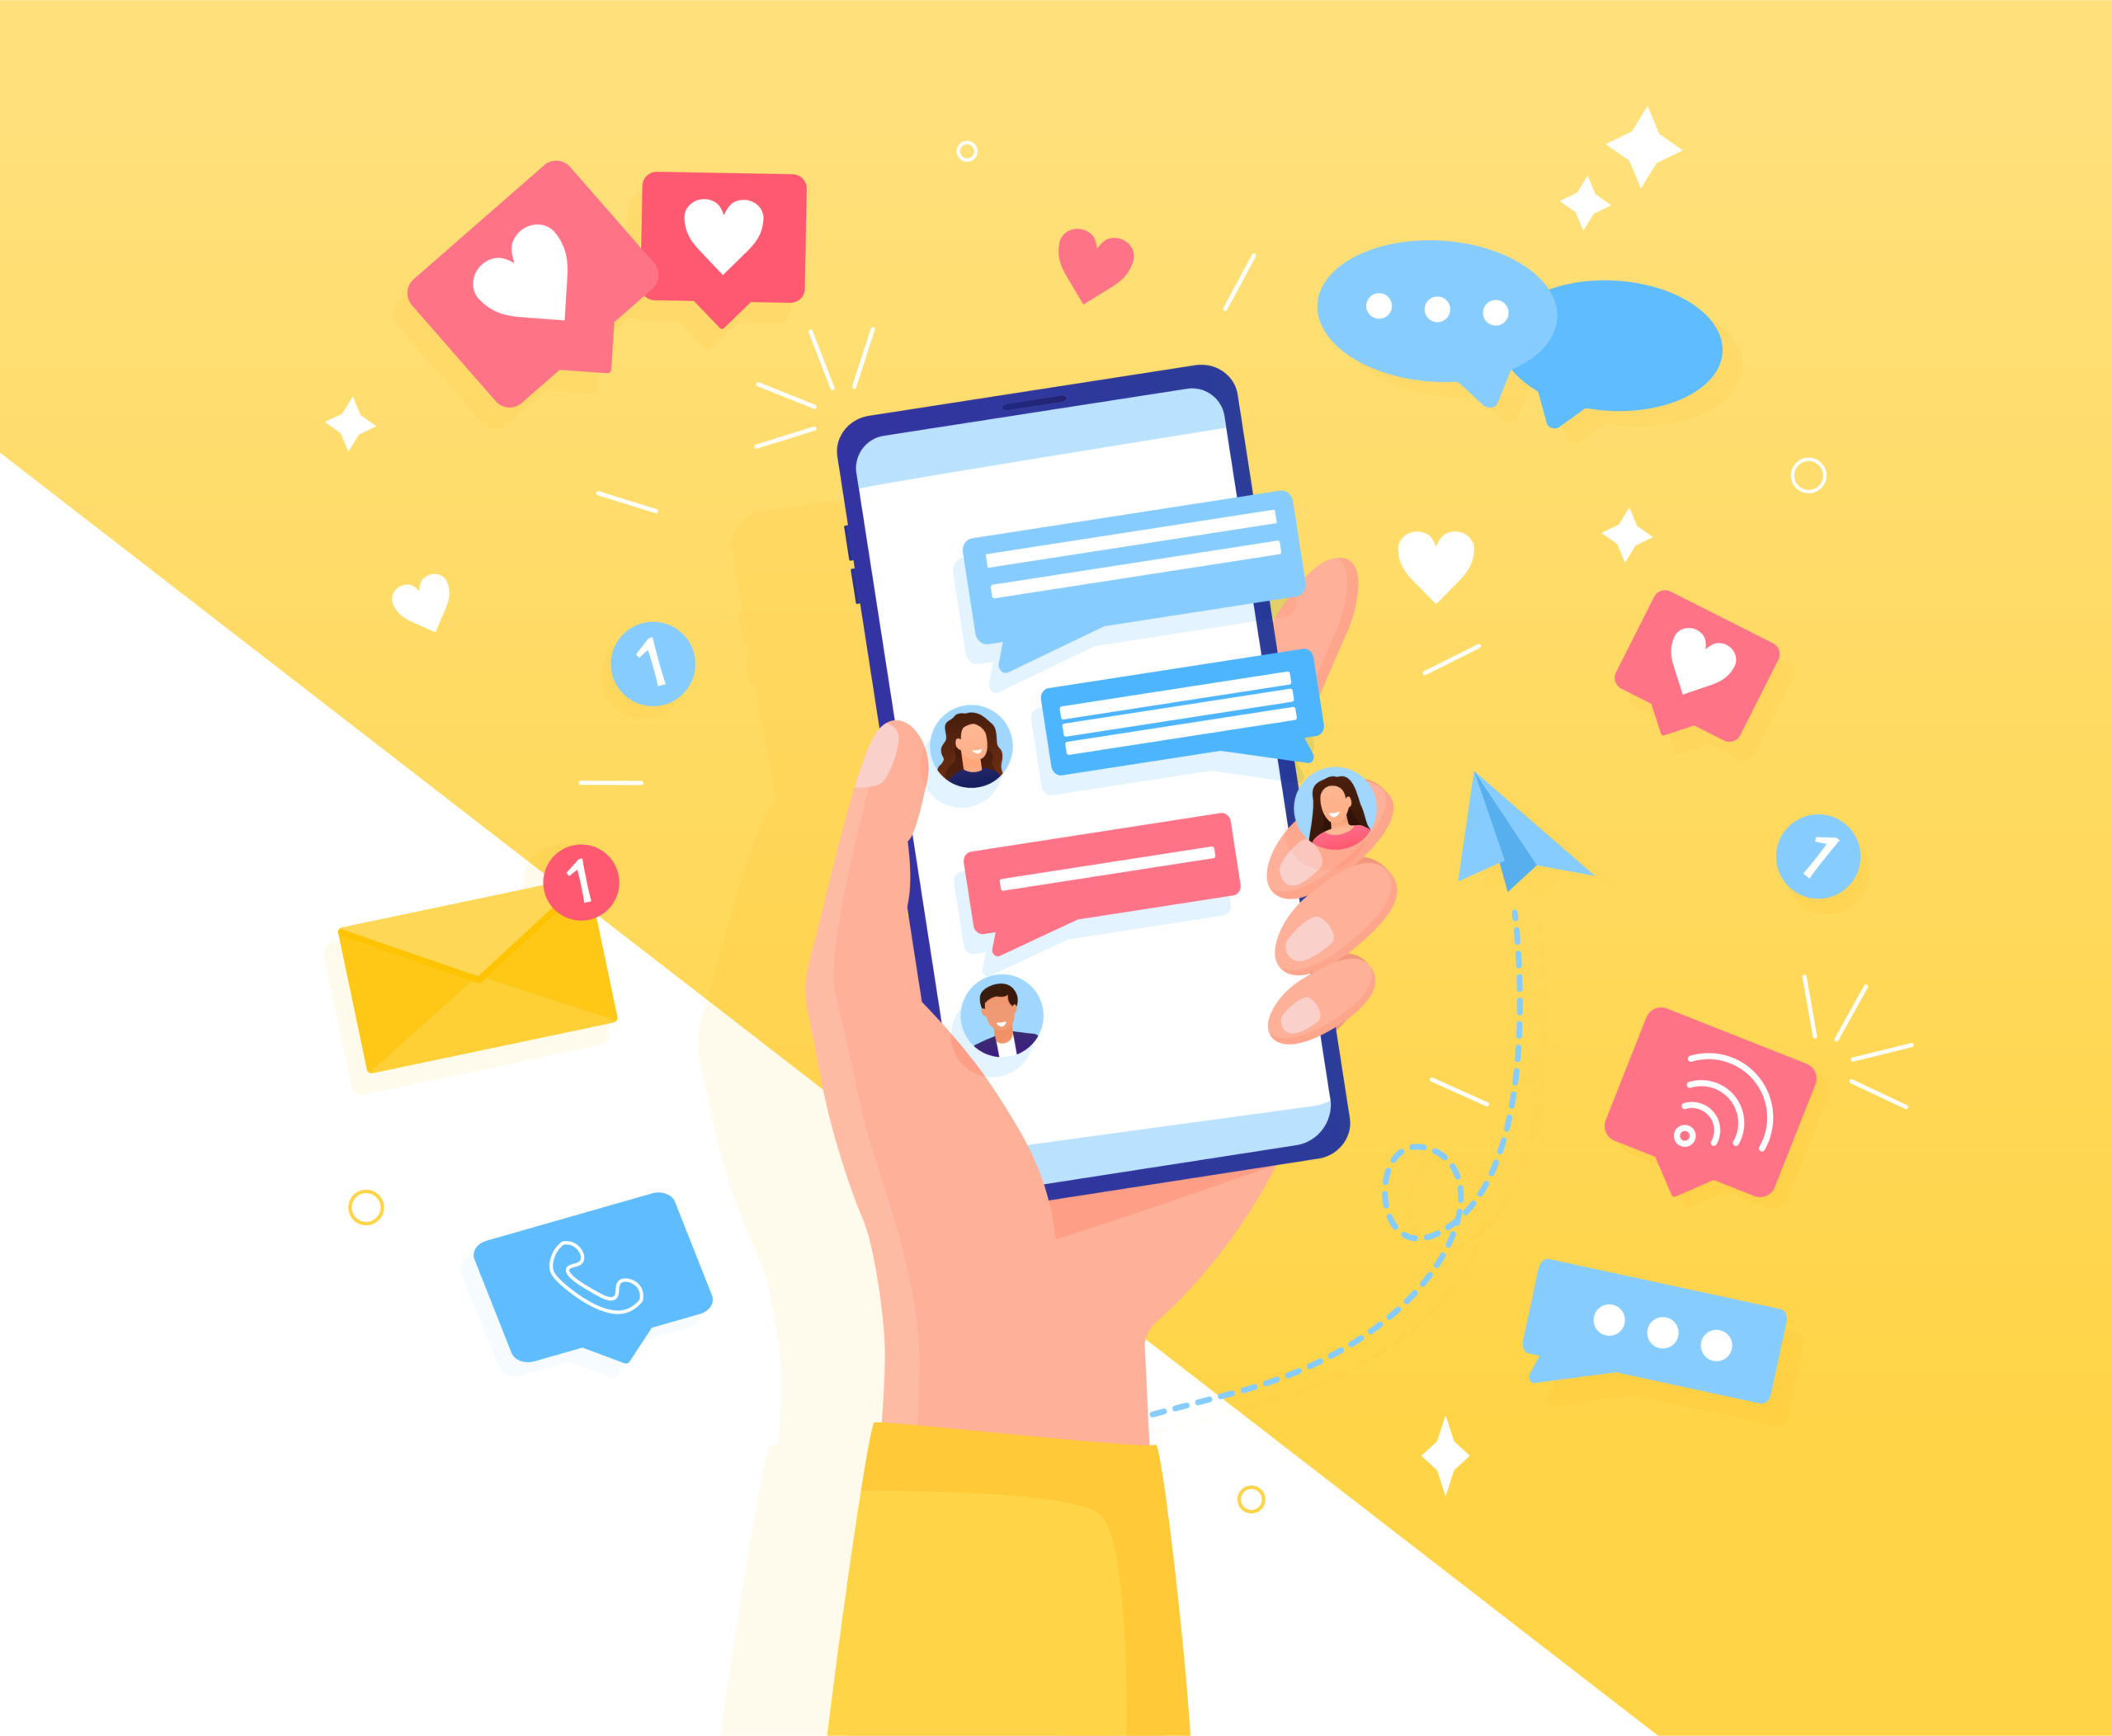 Hand holding phone with short messages, icons and emoticons. Chatting with friends and sending new messages. Colorful speech bubbles boxes on smartphone